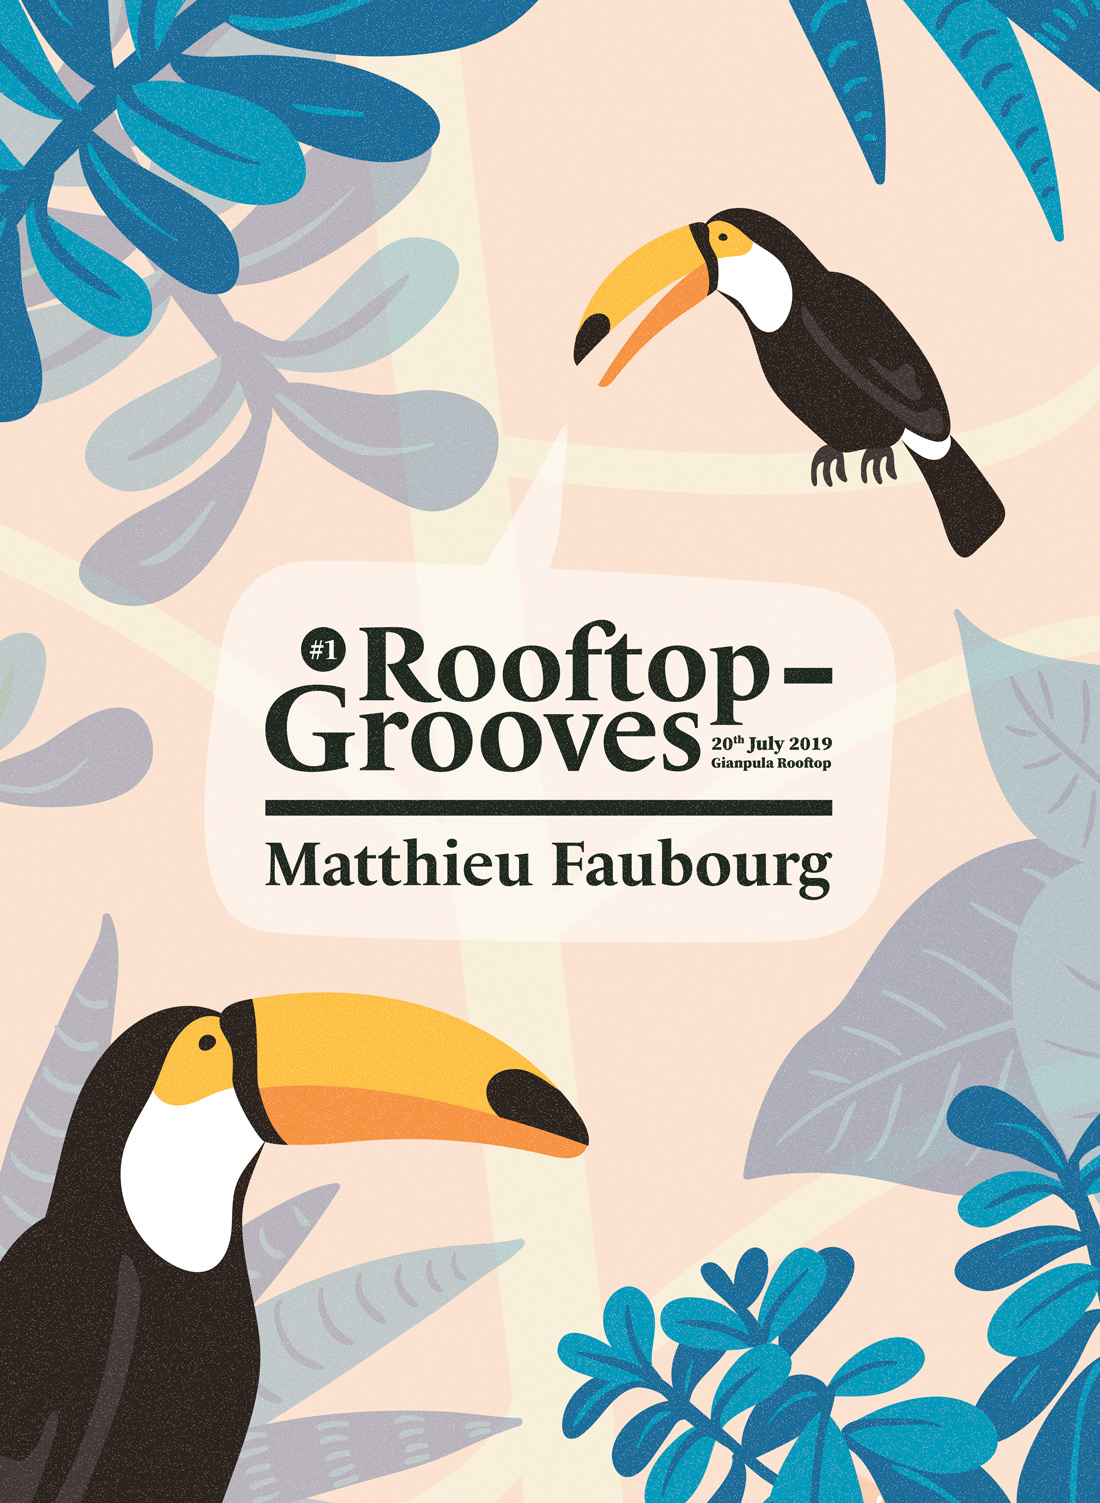 Rooftop Grooves With Matthieu Faubourg